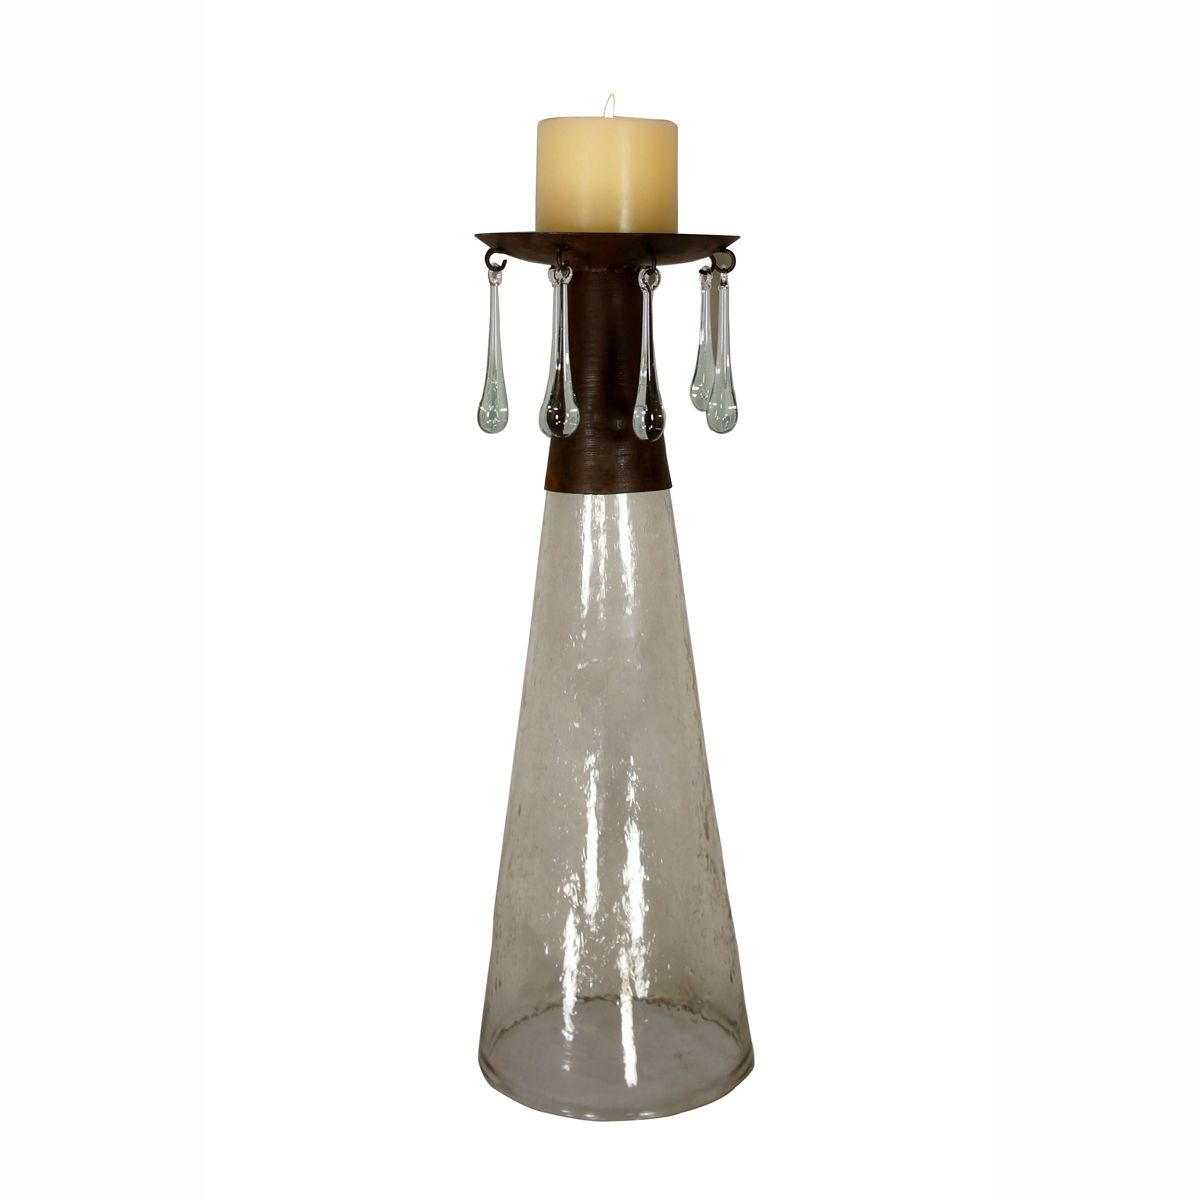 Teardrop Top Candle Holder with Reversed Crackled Clear Cone Base